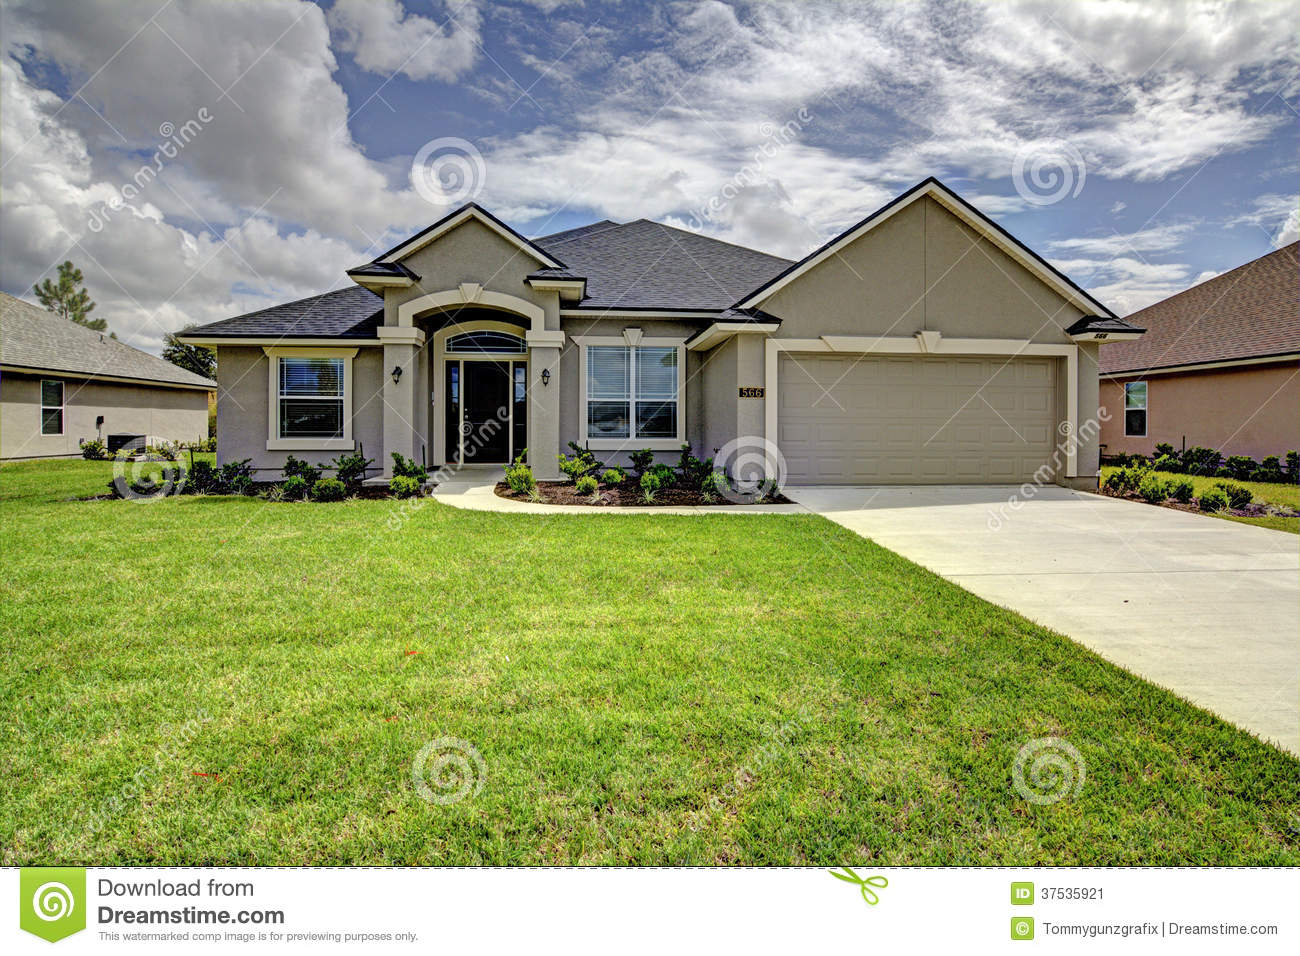 Single family home stock image image of contempary yard for What is family home